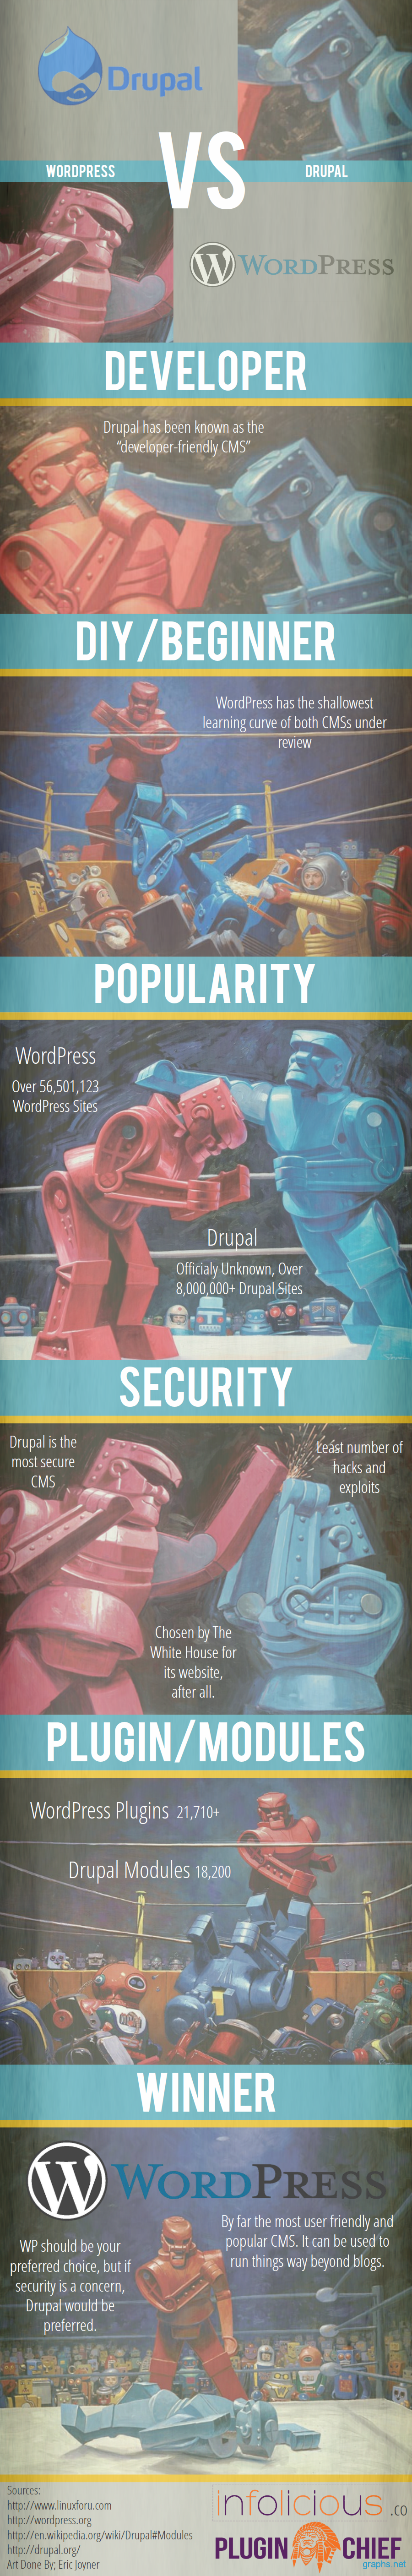 Wordpress and Drupal Comparsion